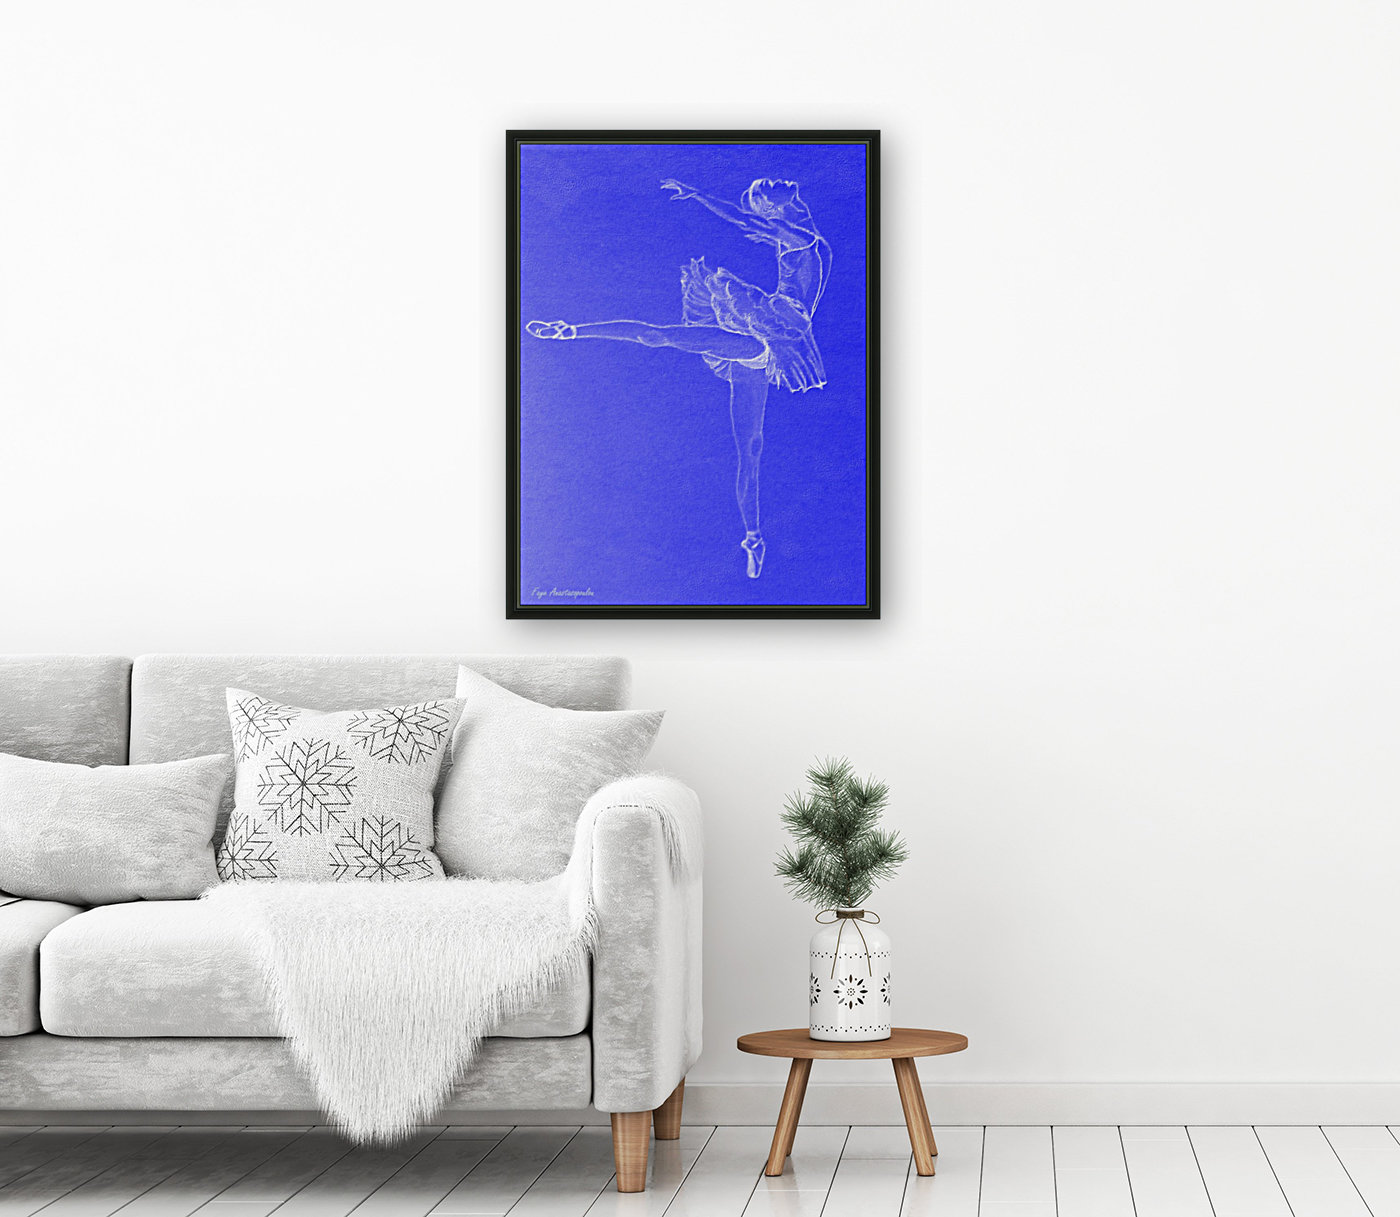 Celestial Ballerina with Floating Frame